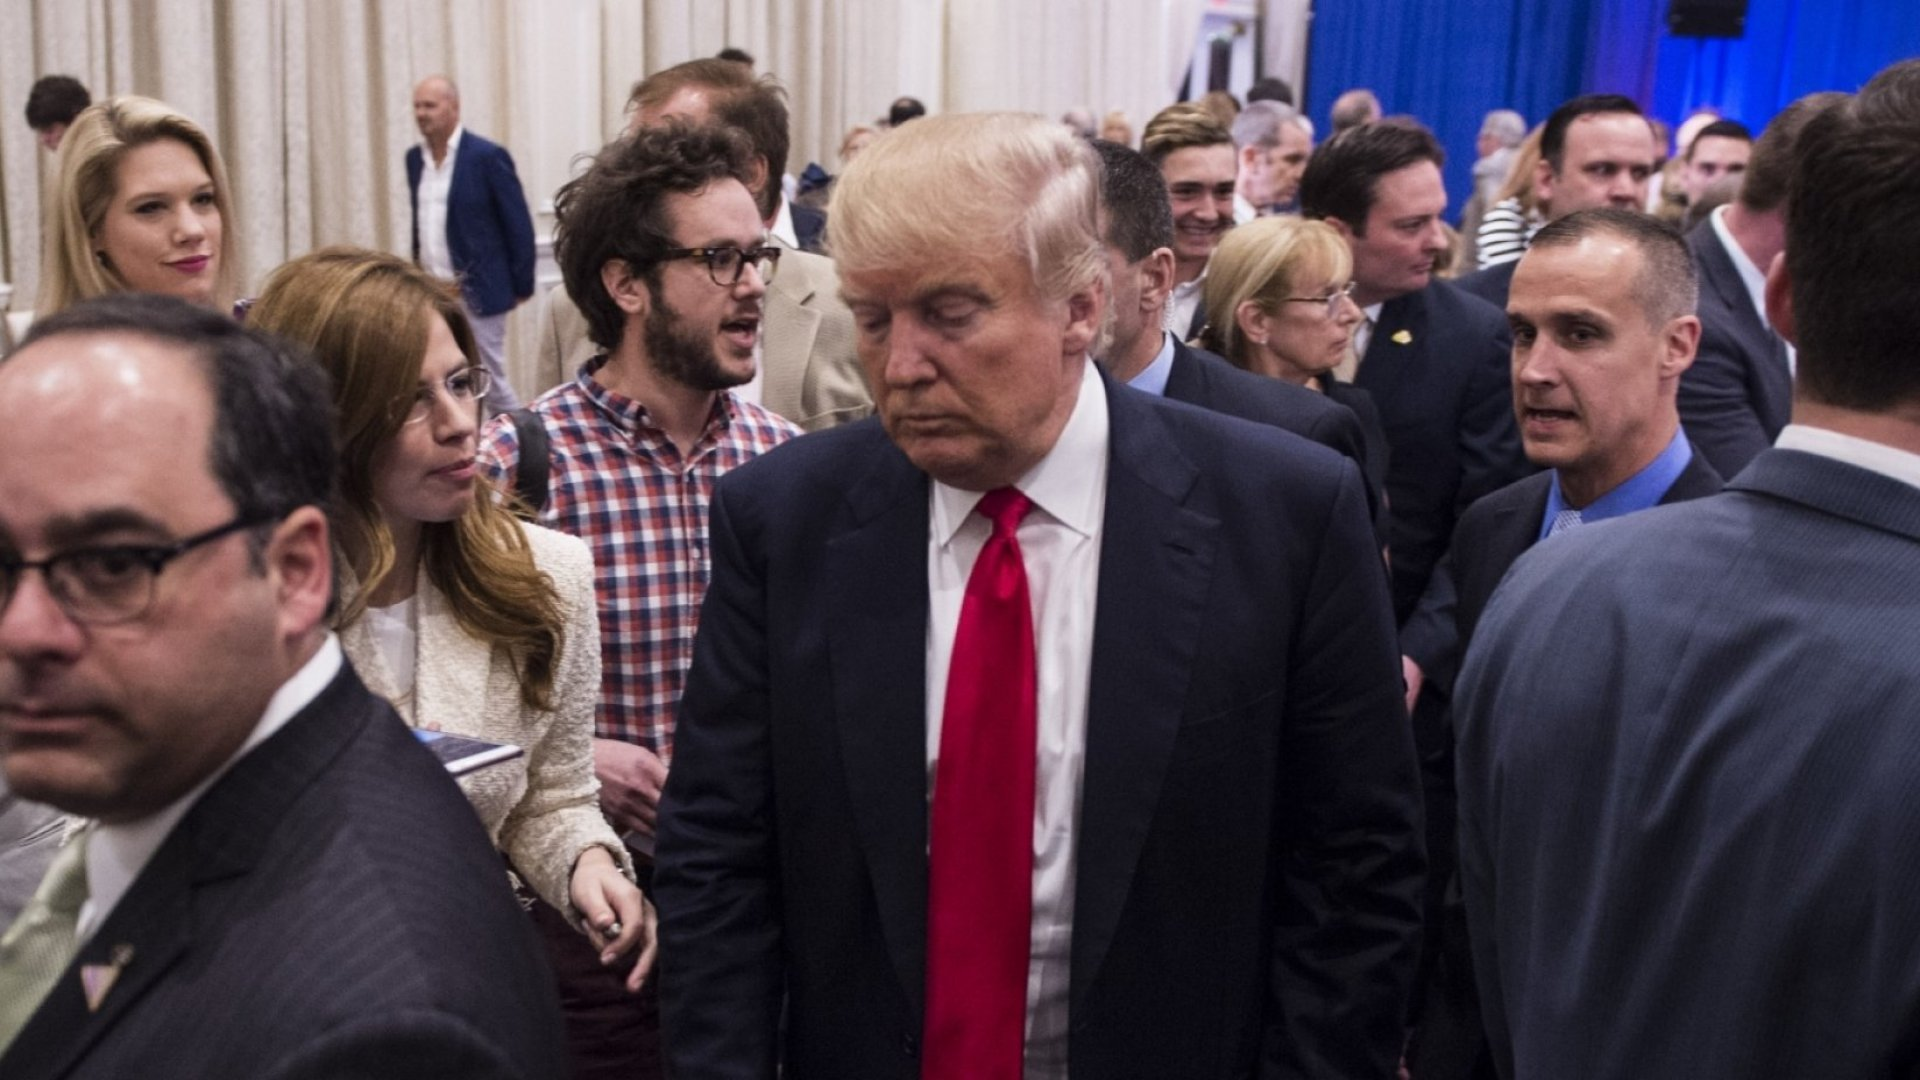 Donald Trump with reporter Michelle Fields and campaign manager Corey Lewandowski (wearing blue shirt). Moments later, video shows, Lewandowski grabbed Fields and shoved her aside.